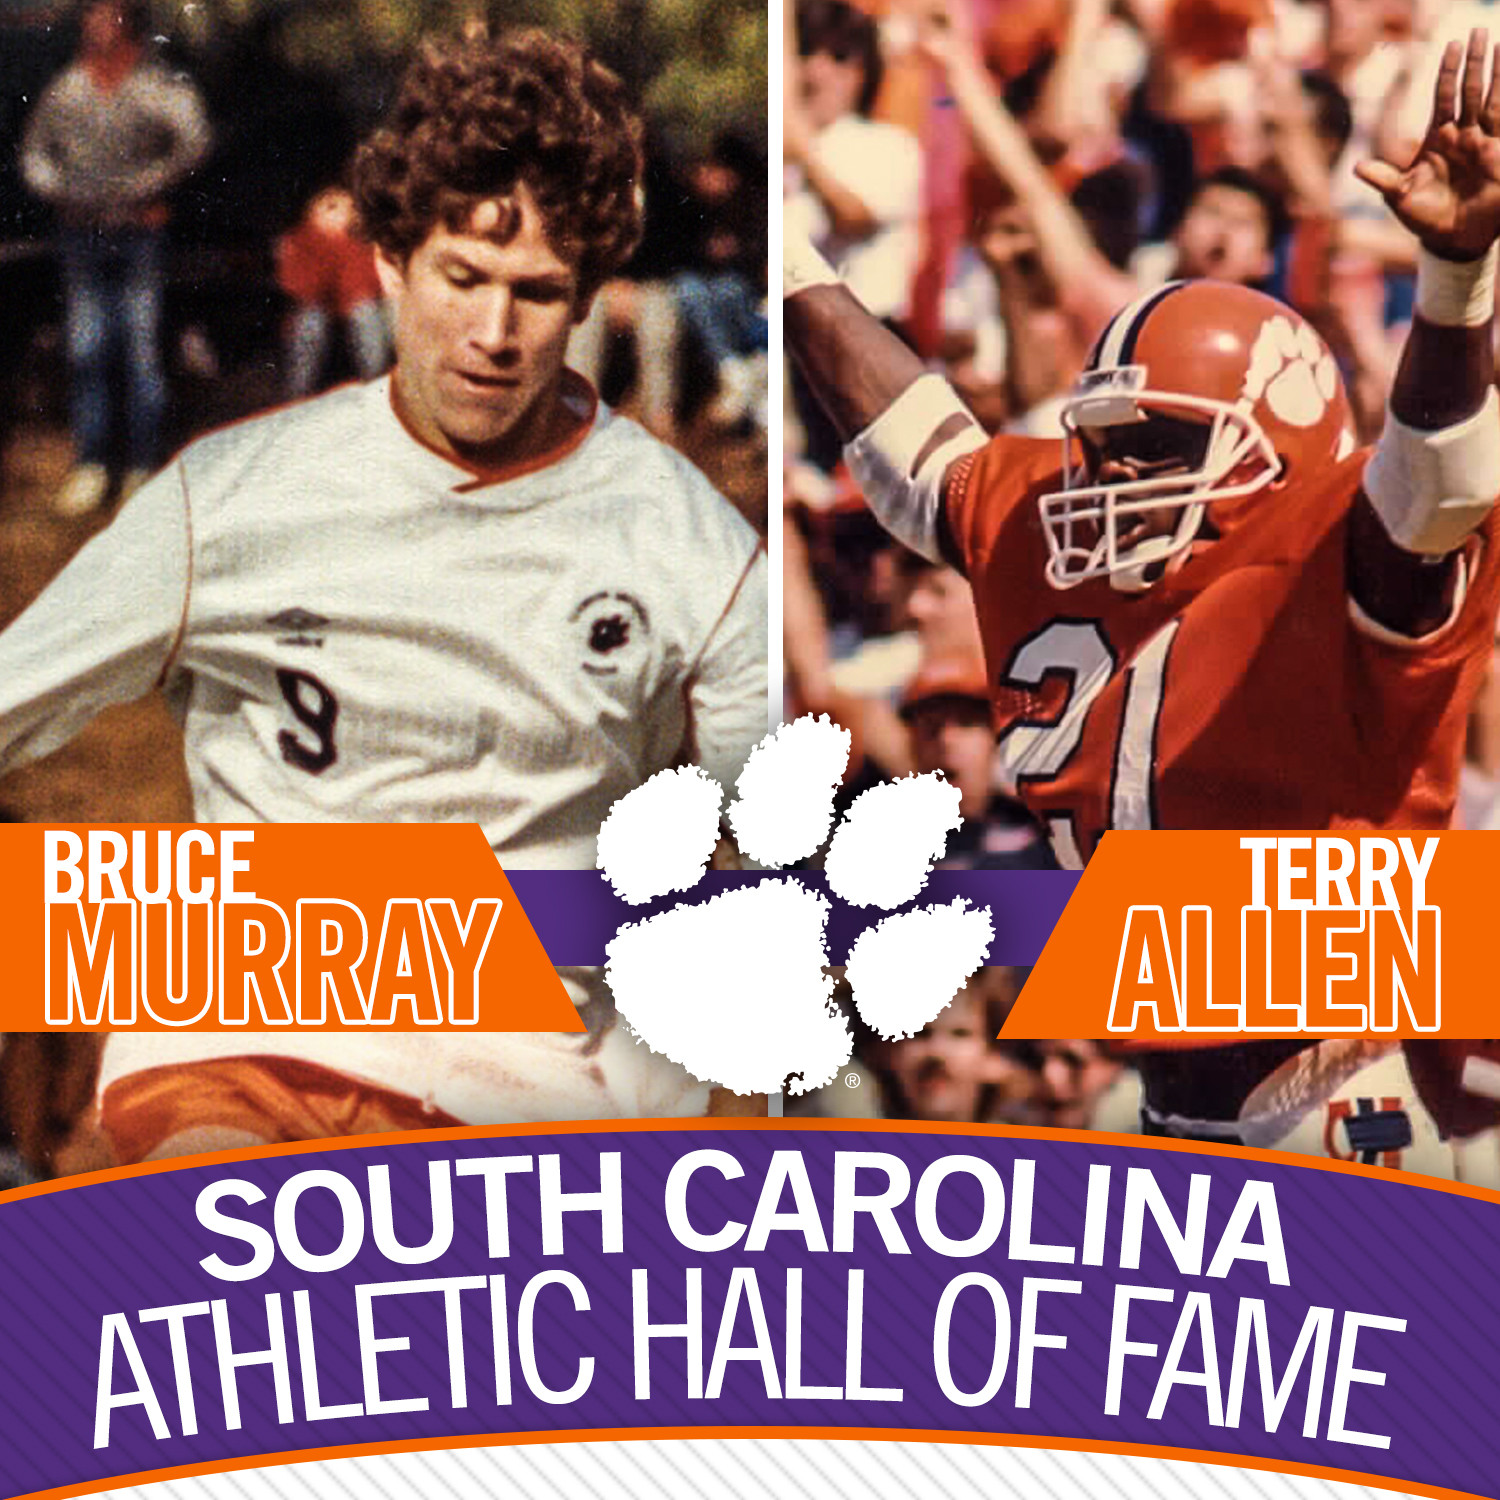 Murray & Allen Named to SCAHOF